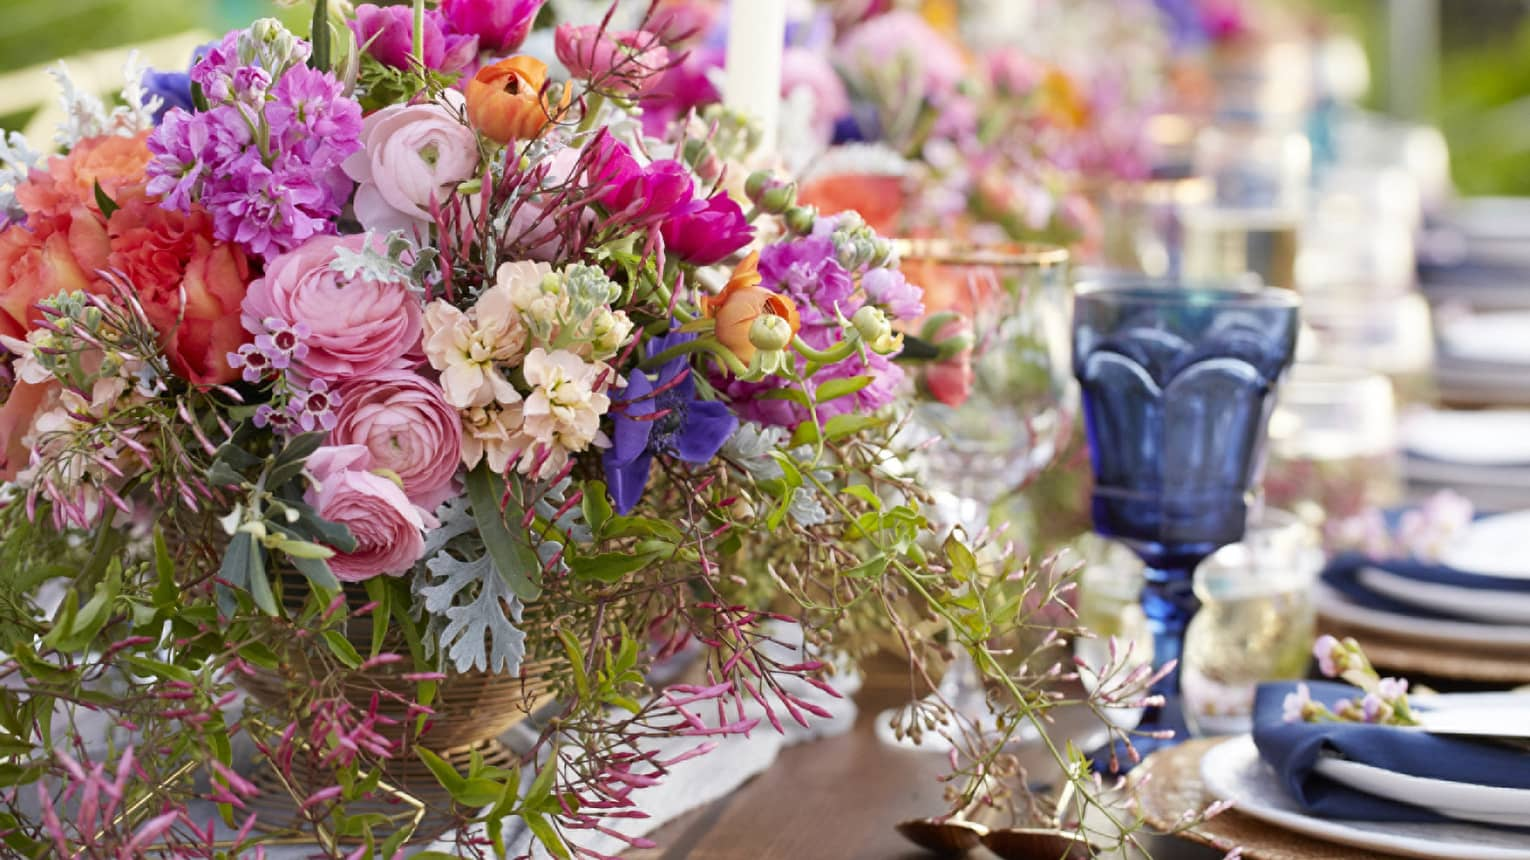 Floral wedding centerpieces decorate the table at a wedding in Maui, Hawaii